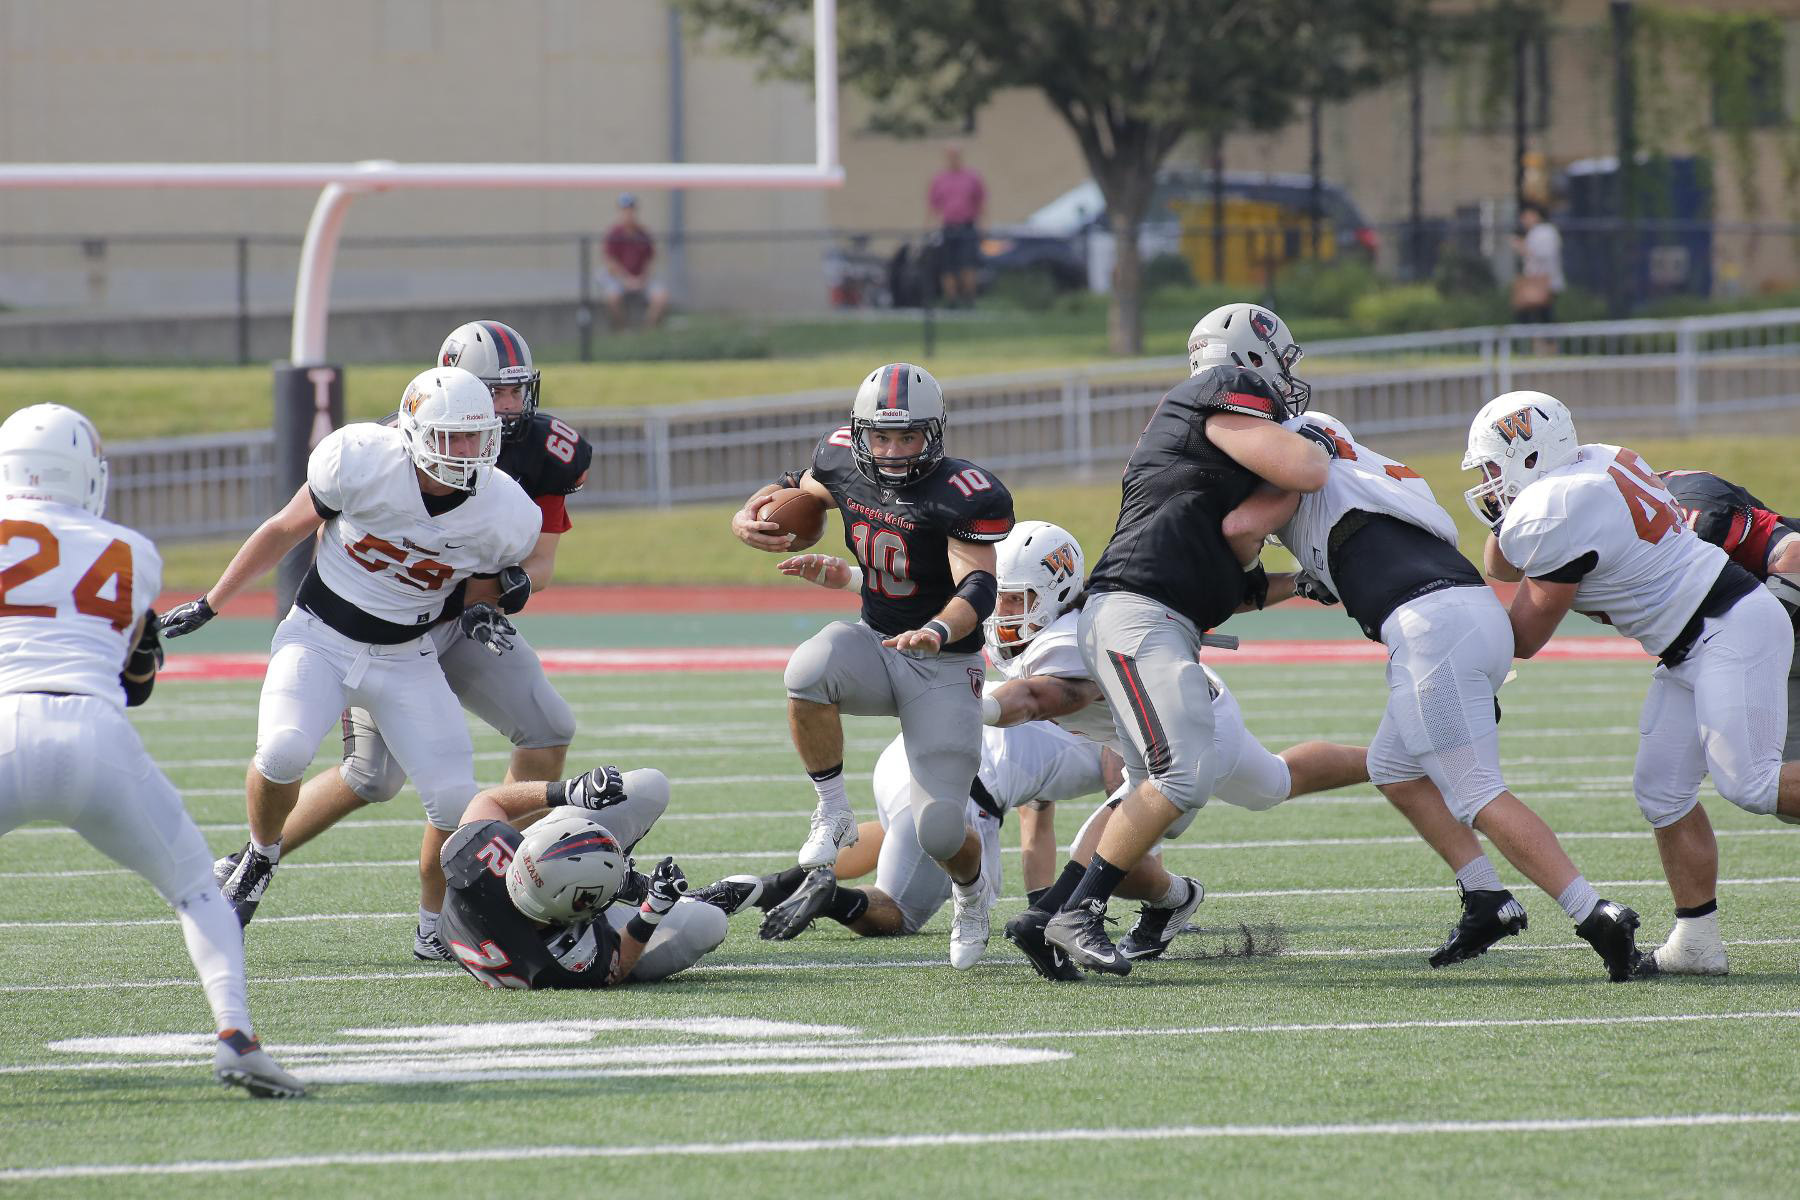 Junior running back Sam Benger bursts through the defense of Waynesburg in the Tartans' victory on Saturday. (credit: Courtesy of CMU Athletics)